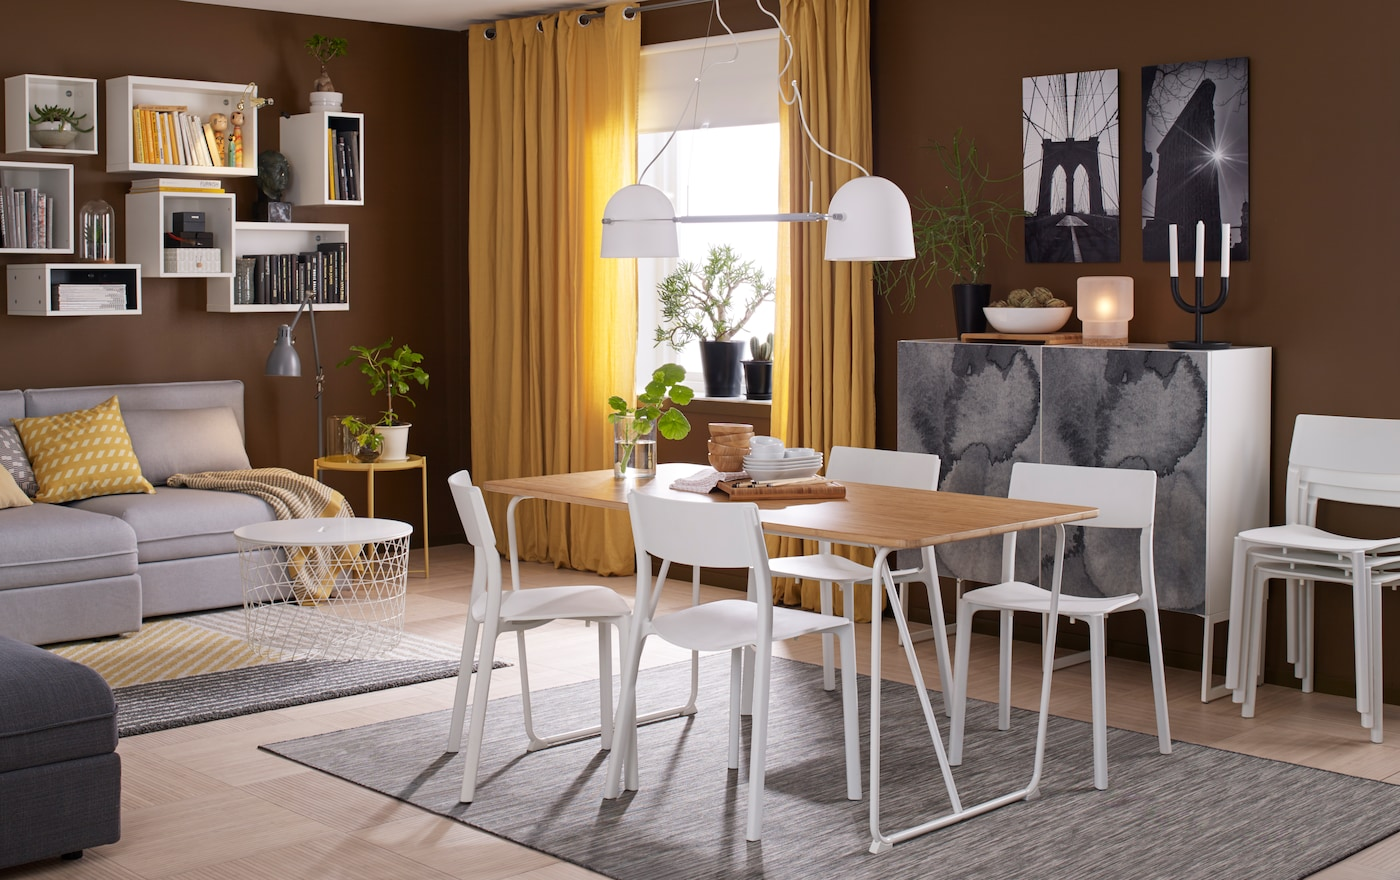 Living room dining rooms ideas uk